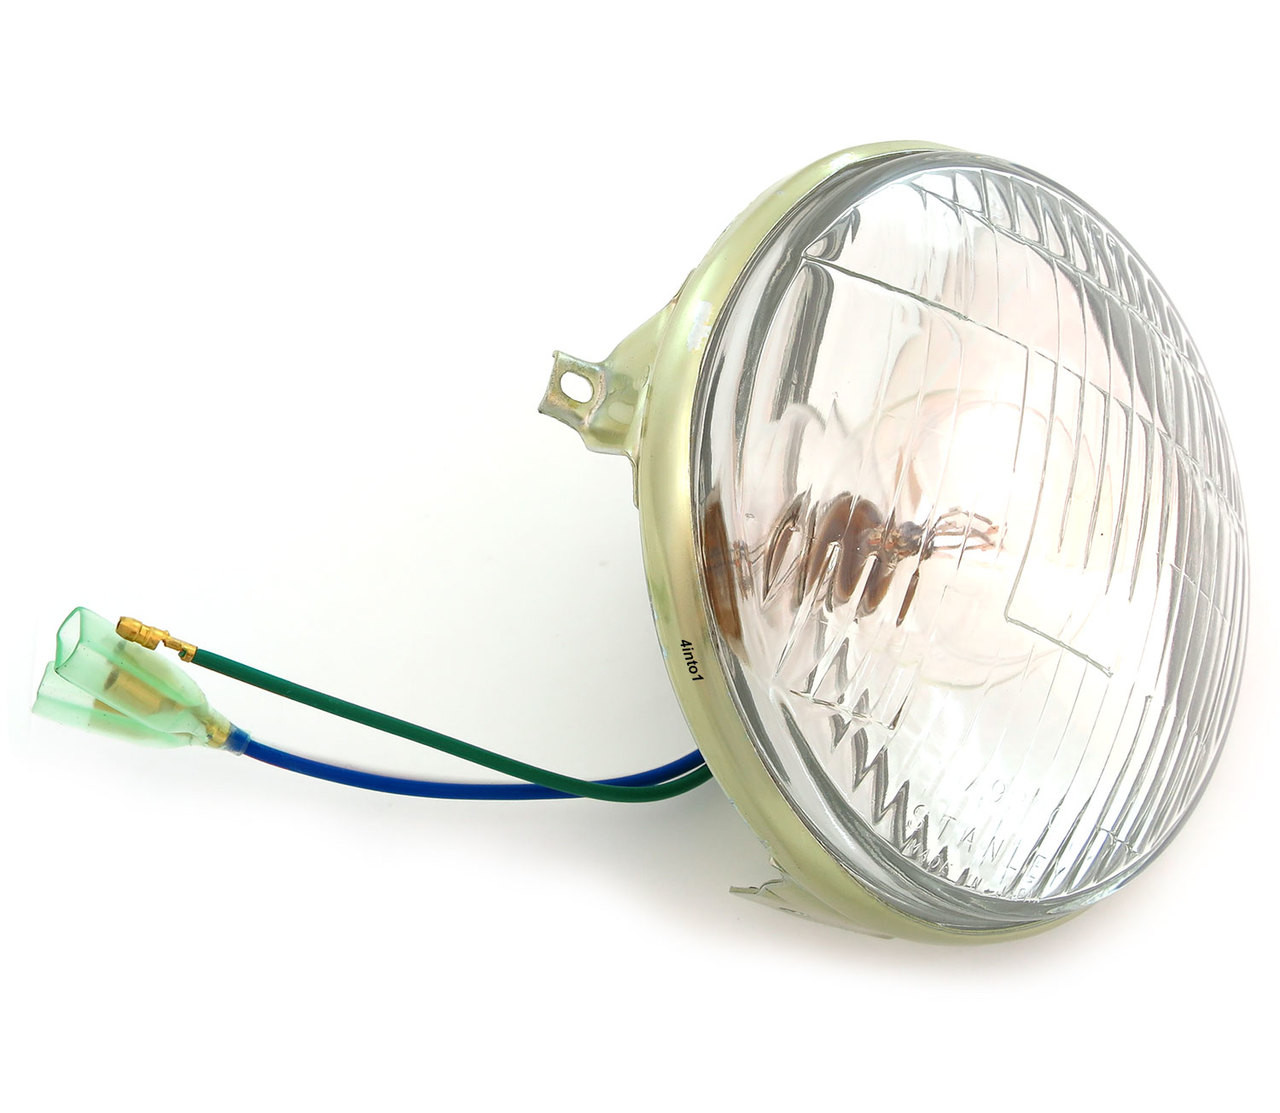 hight resolution of genuine honda 6v sealed beam headlight 33120 243 672 ct1967 honda s90 wiring headlight 10